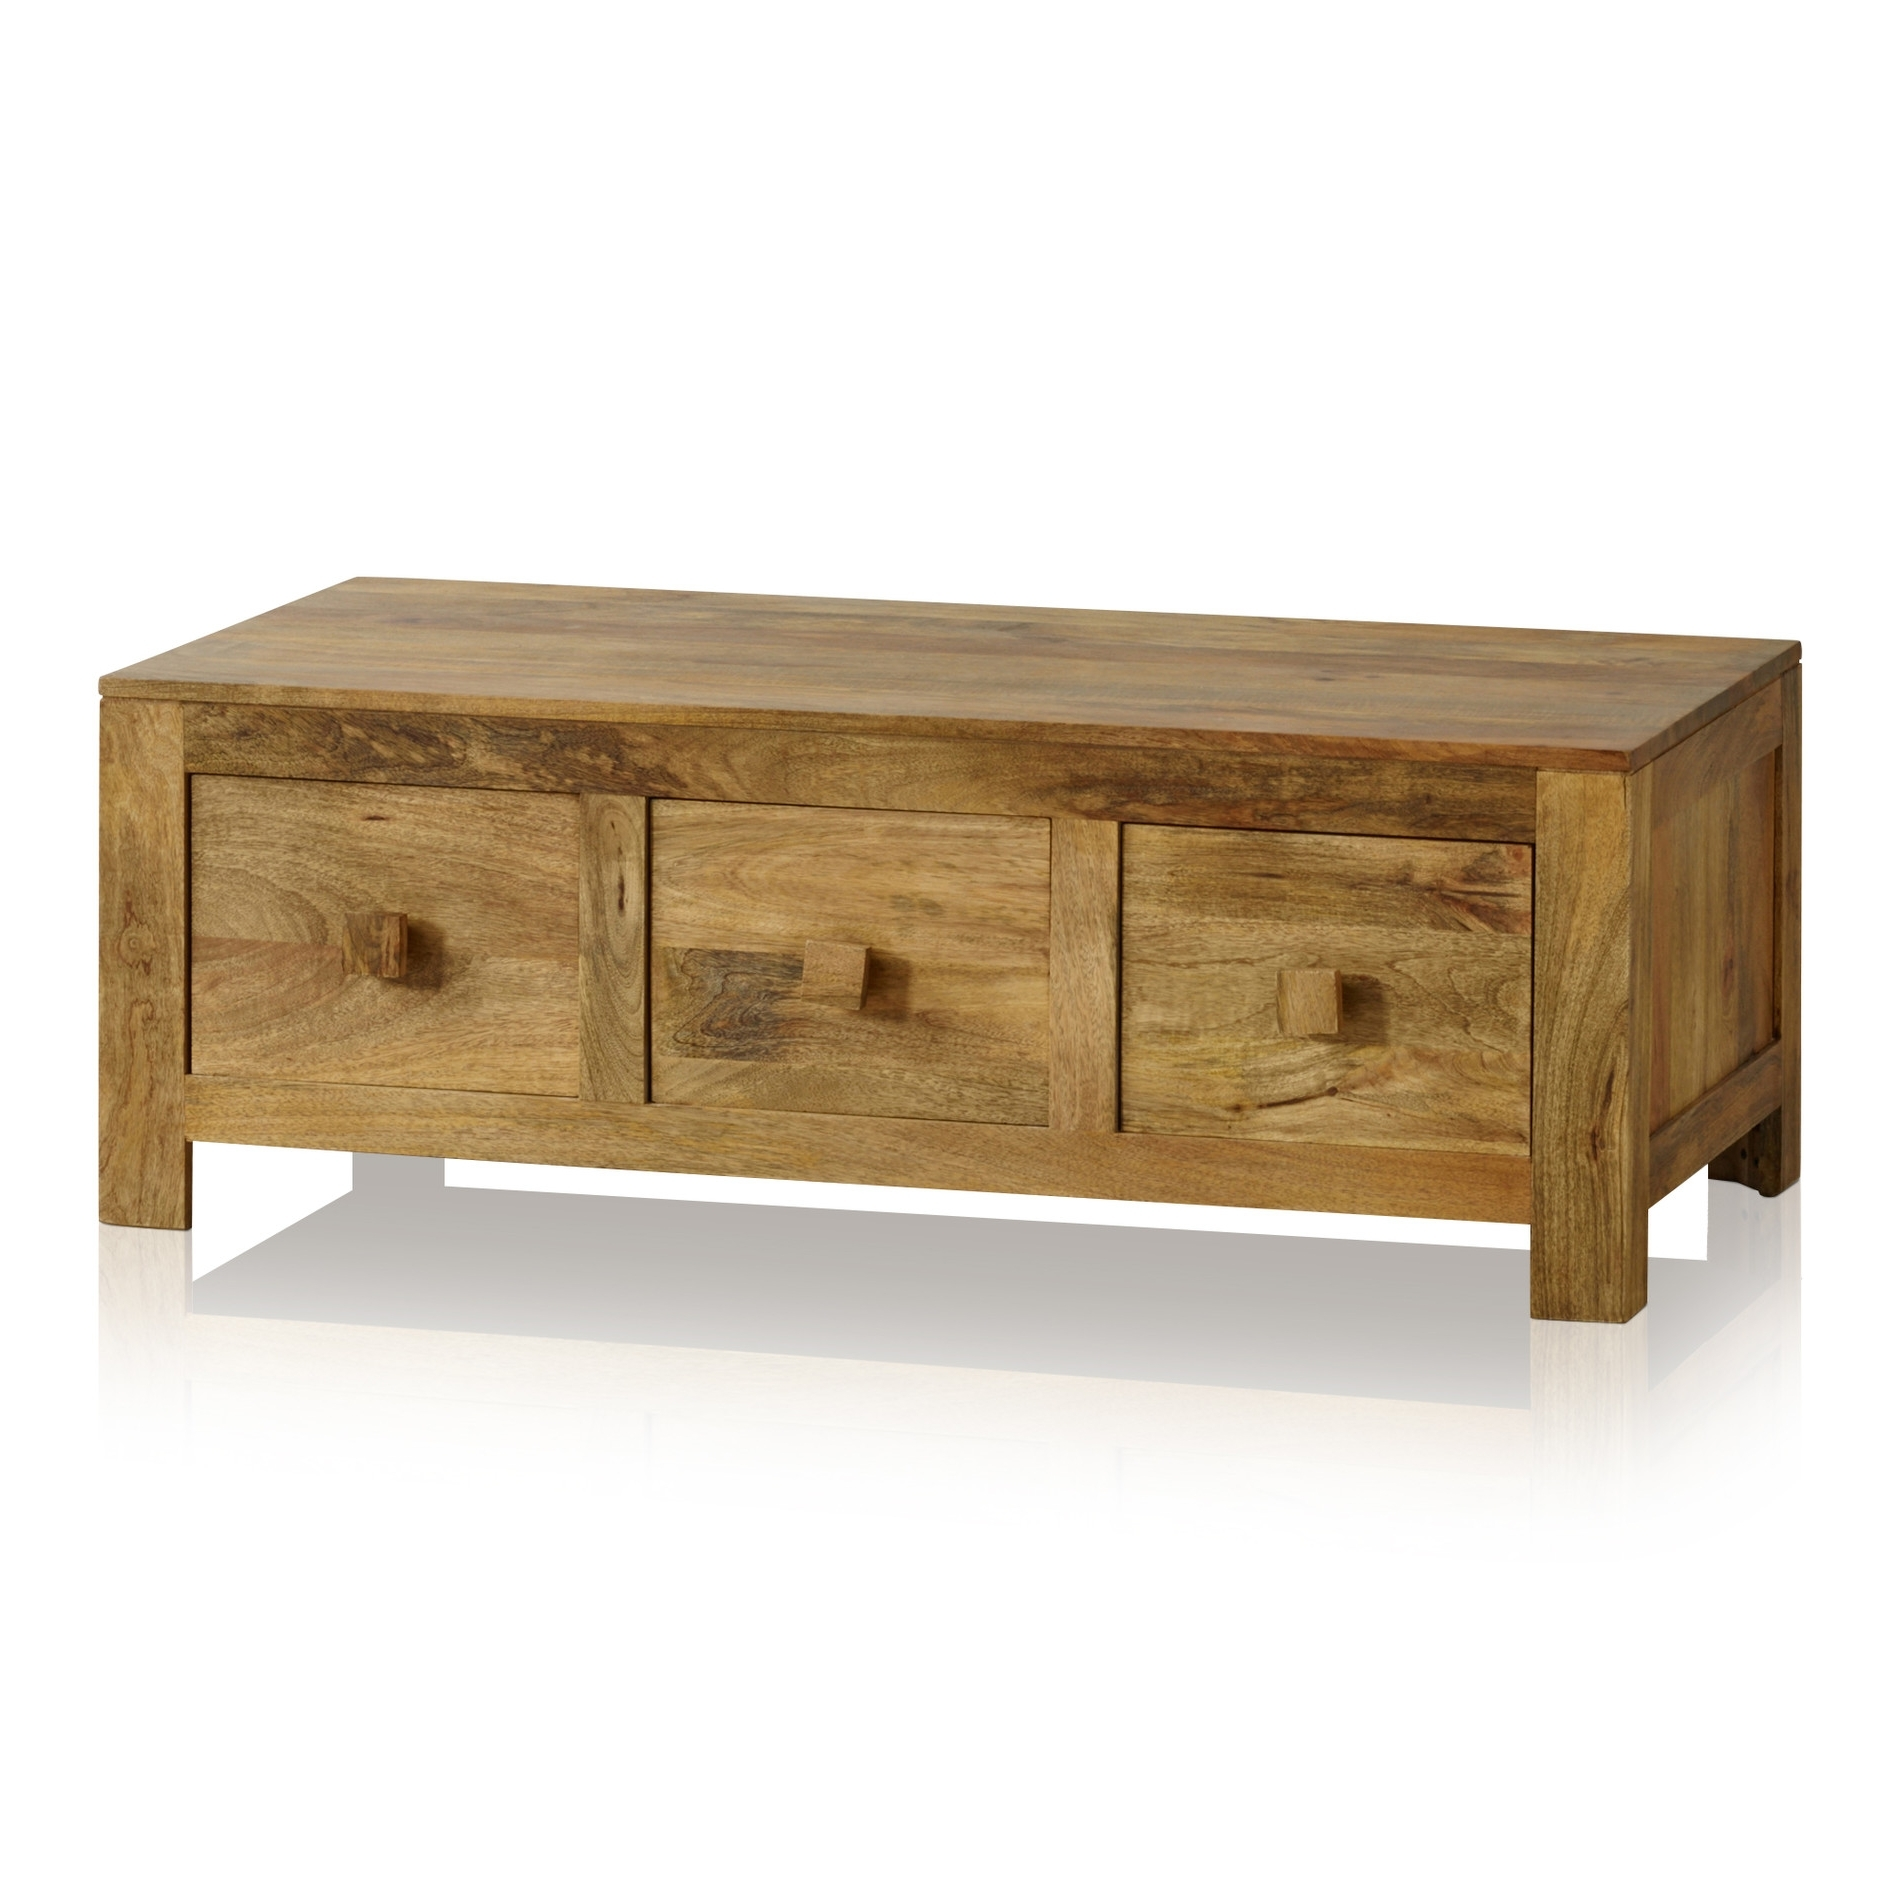 Mantis Light 6 Drawer Coffee Table In Natural Solid Mango With Best And Newest Natural 2 Drawer Shutter Coffee Tables (View 5 of 20)